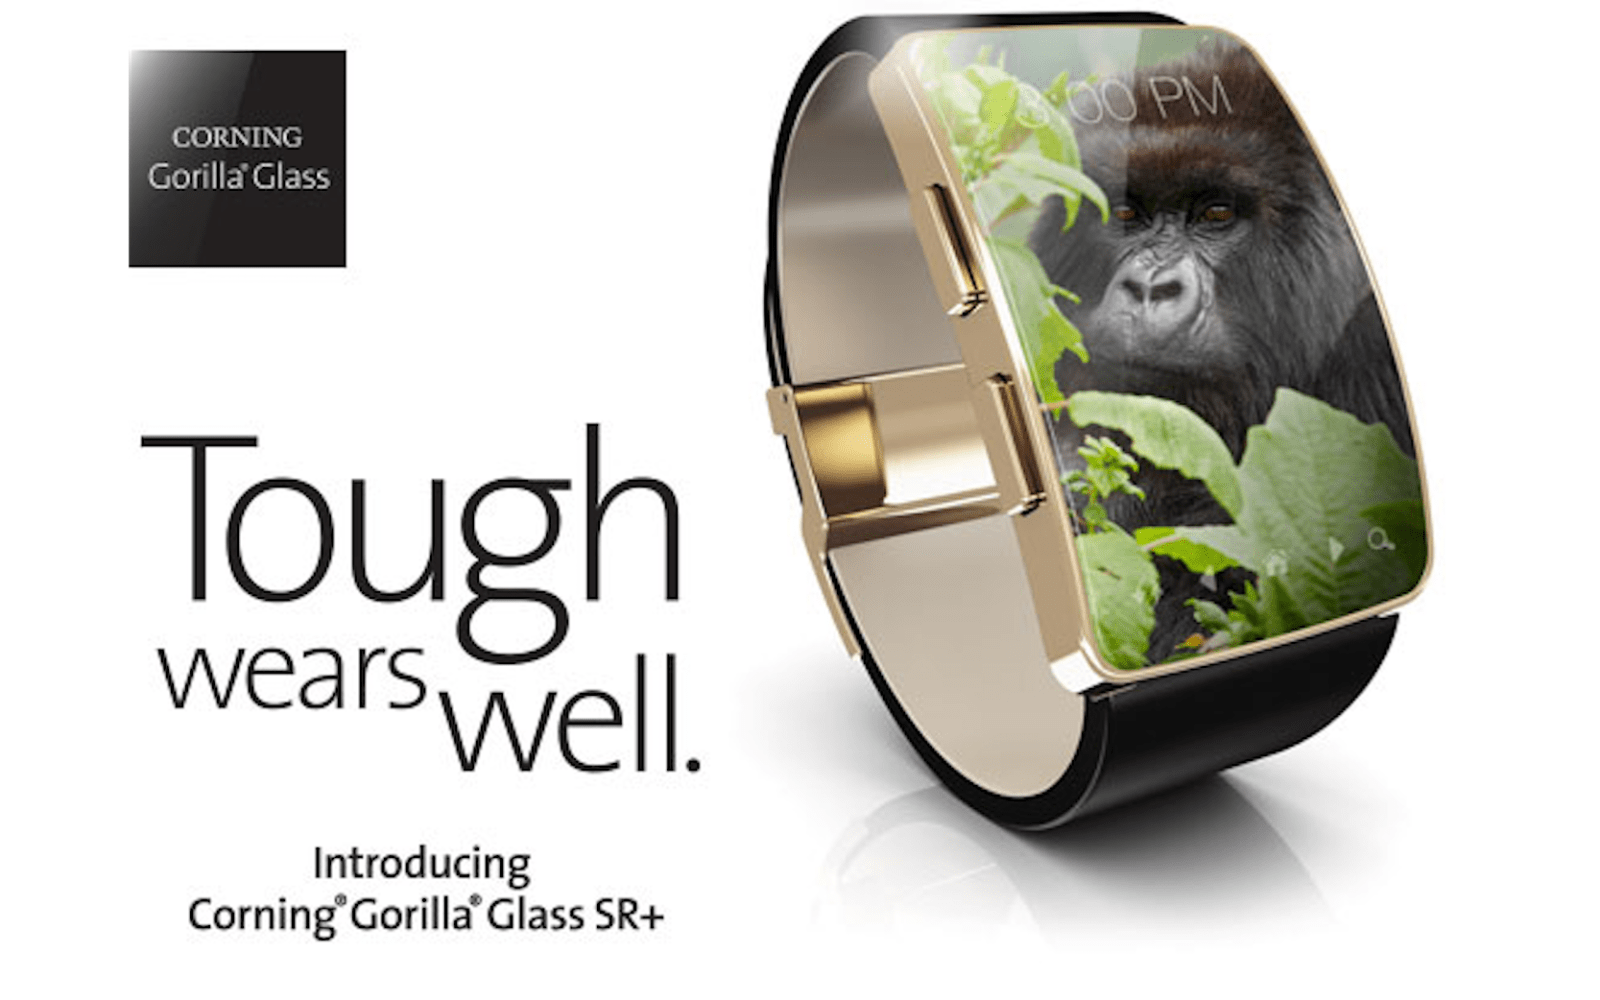 Corning unveils Gorilla Glass SR+ offering for wearables, possibly headed to the Apple Watch